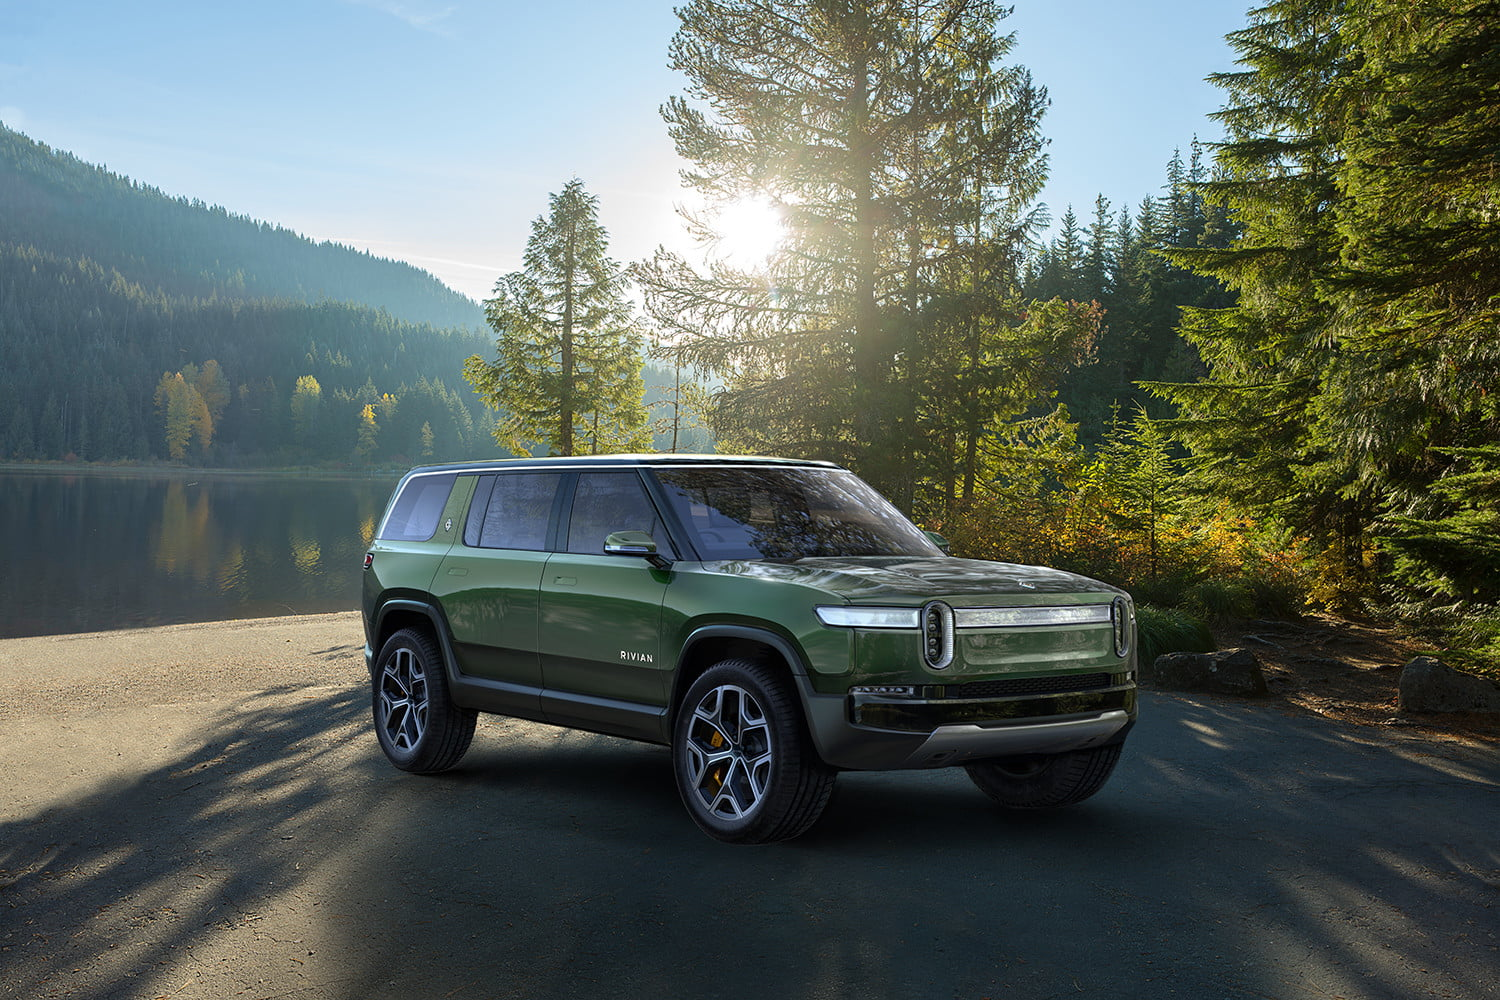 Rivian Ceo R J Scaringe Wants His Startup To Be The Patagonia Of Electric Cars